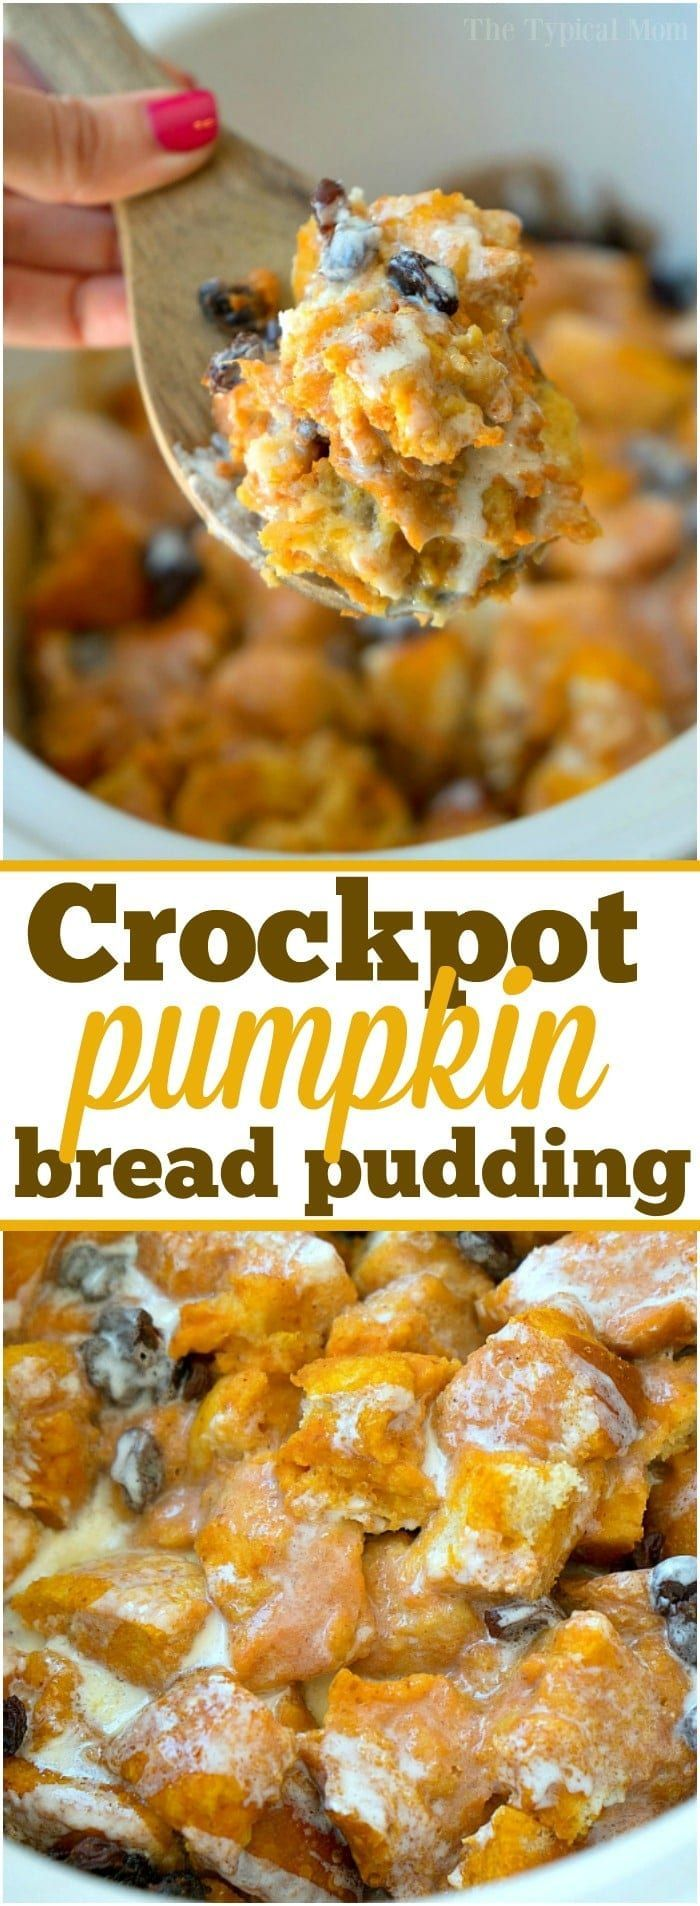 Mar 26, 2020 – Crockpot bread pudding recipe with pumpkin!! This stuff is amazing and SO easy to make too. Perfect Fall …